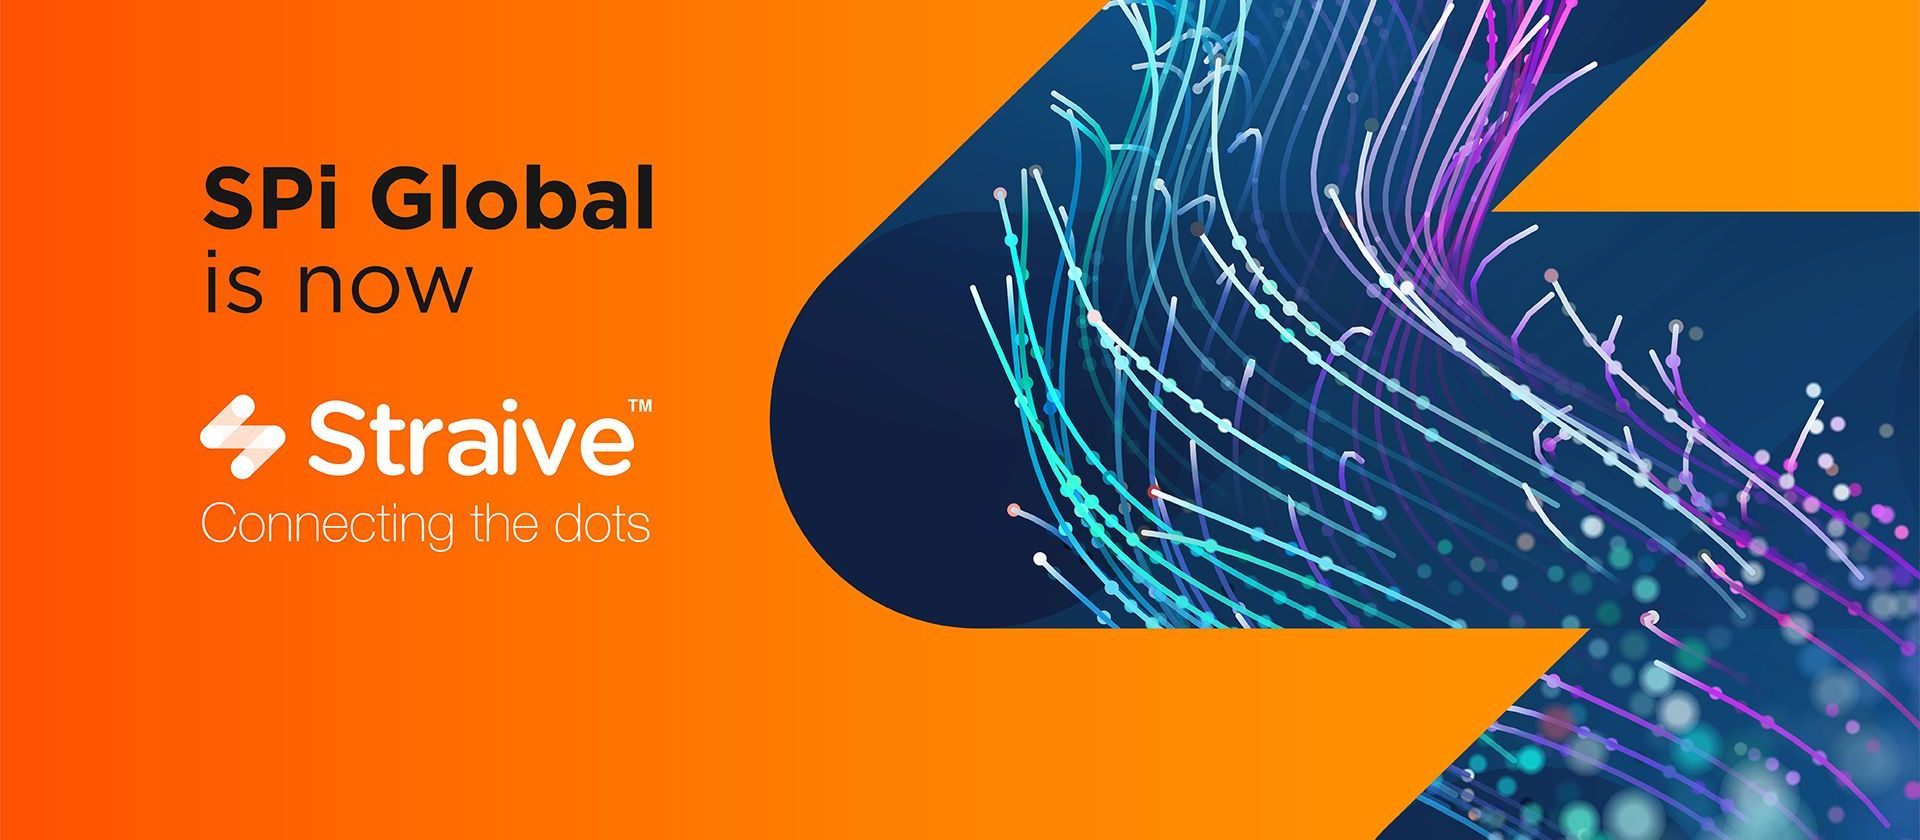 Spi-Global is now straive - Connecting the dots | Unstructured Data